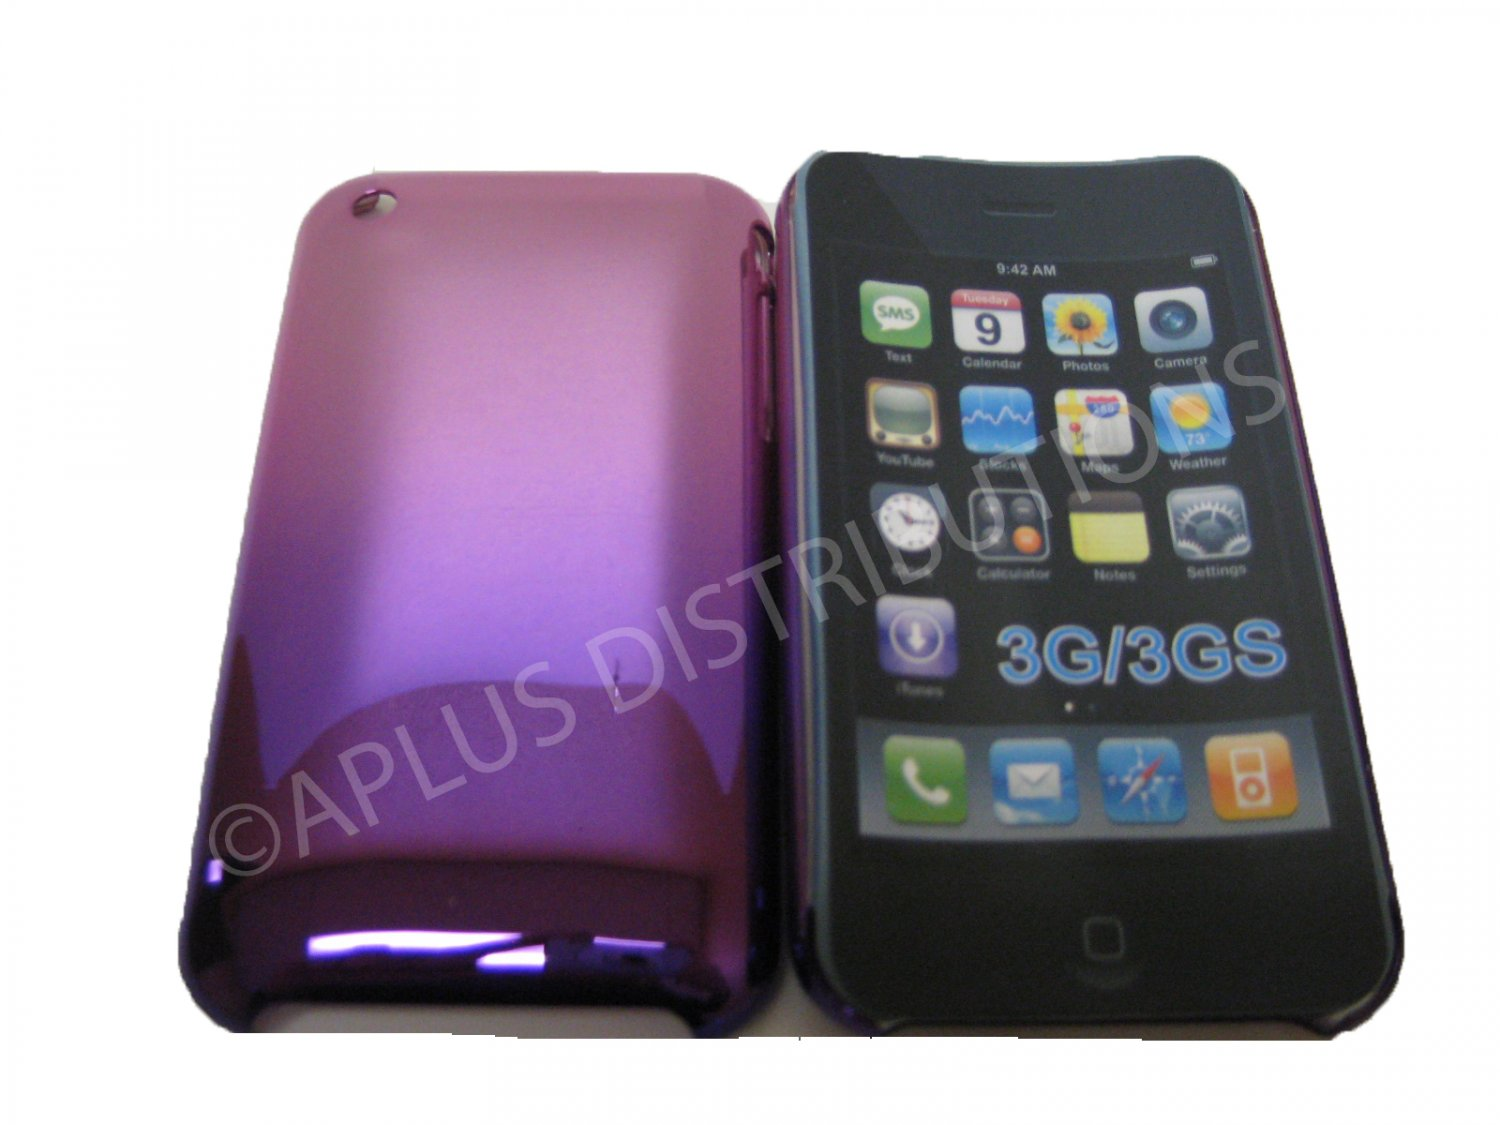 New Purple Metallic Reflection Design Hard Protective Cover For iPhone 3G 3GS - (0092)